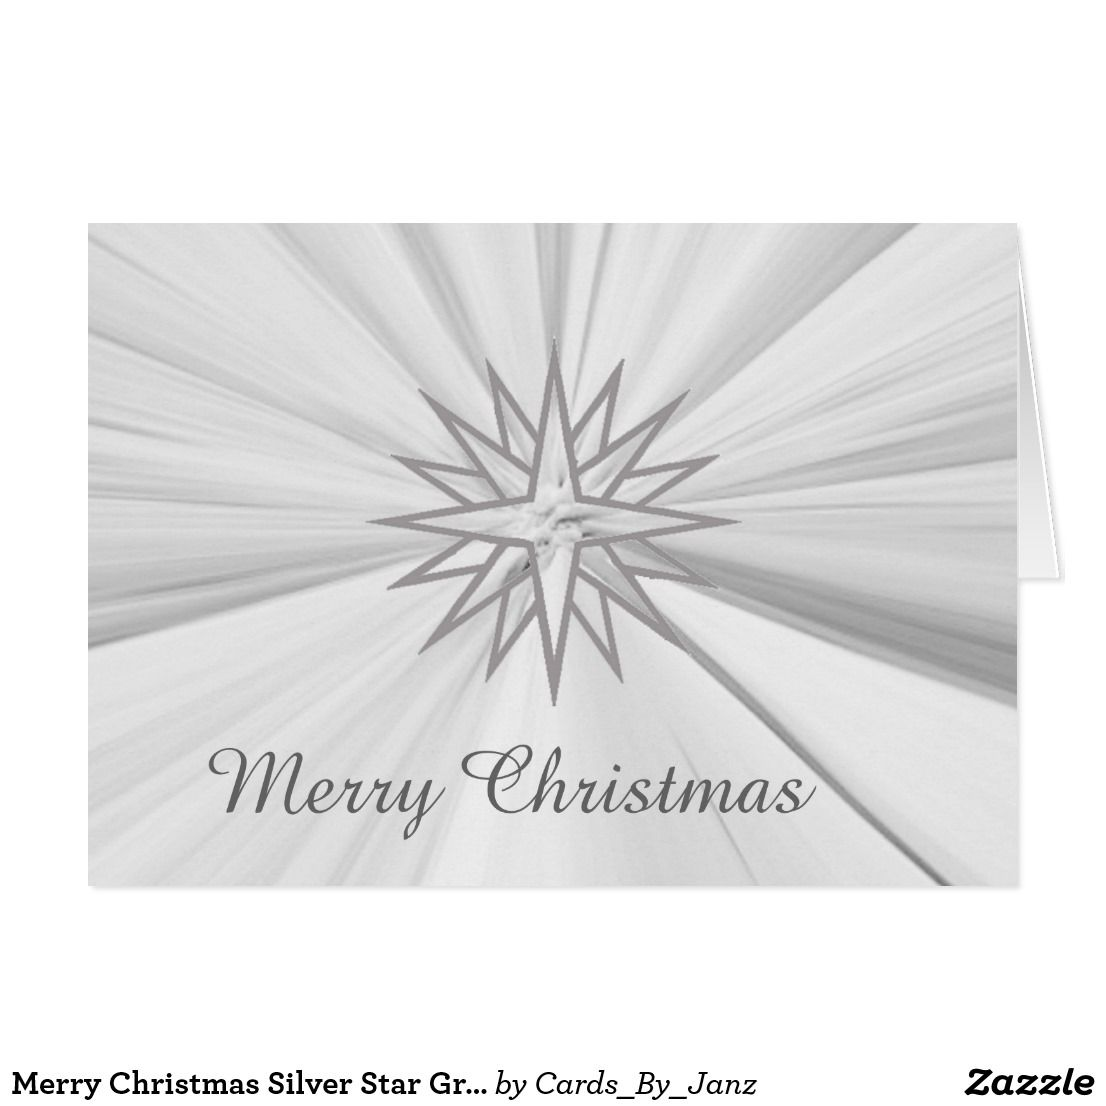 Merry christmas silver star greeting card by janz silver stars merry christmas silver star greeting card by janz kristyandbryce Images